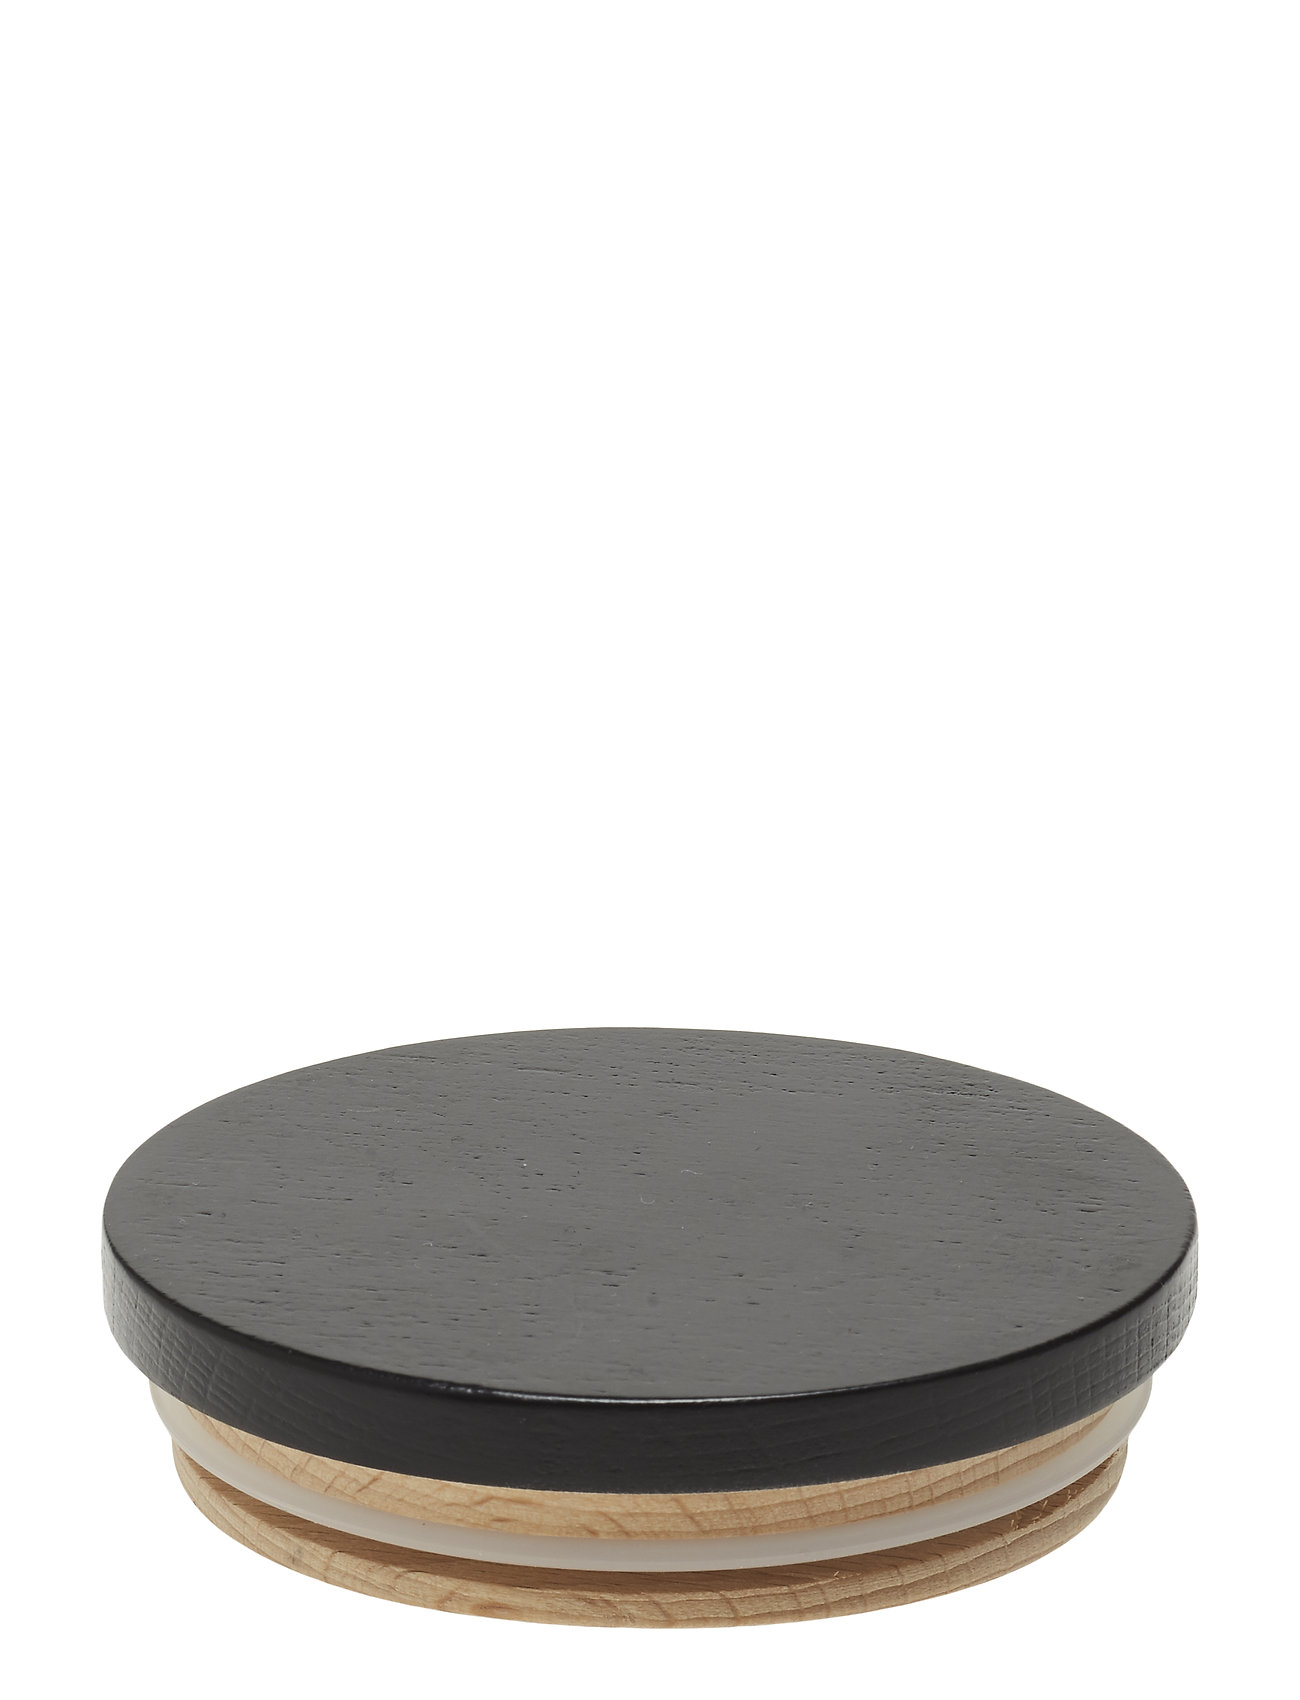 Image of Wooden Lid For Porcelain Cup Home Meal Time Cups & Mugs Grå Design Letters (3363493495)